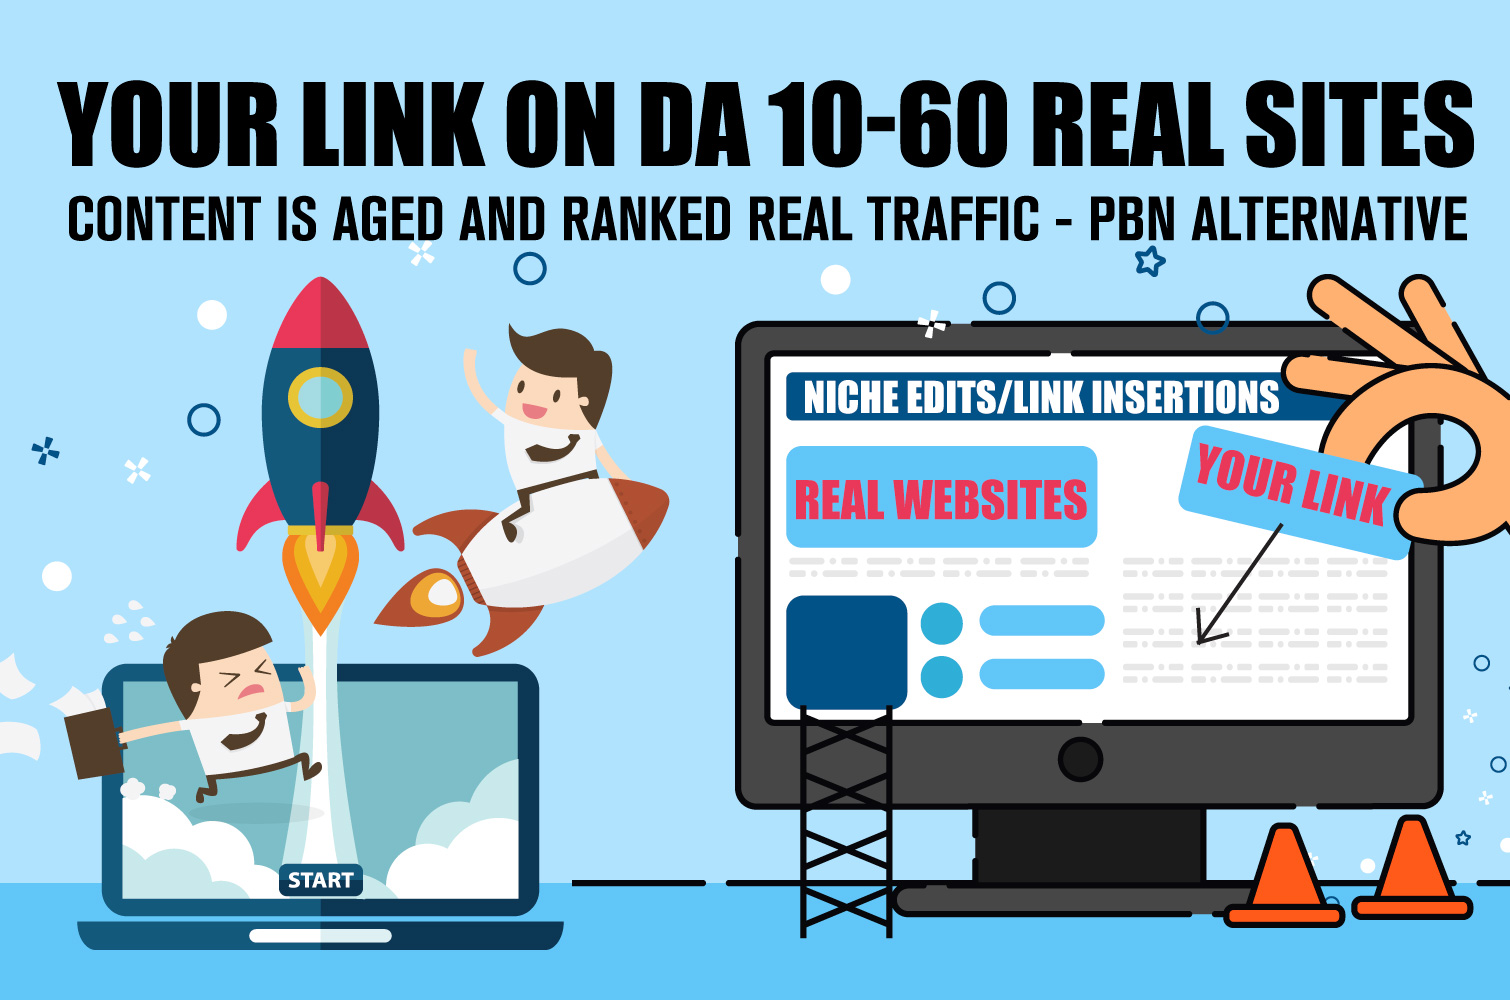 Niche Edit Backlinks - Real Power Real Sites PBN Alternative DA10-60 links